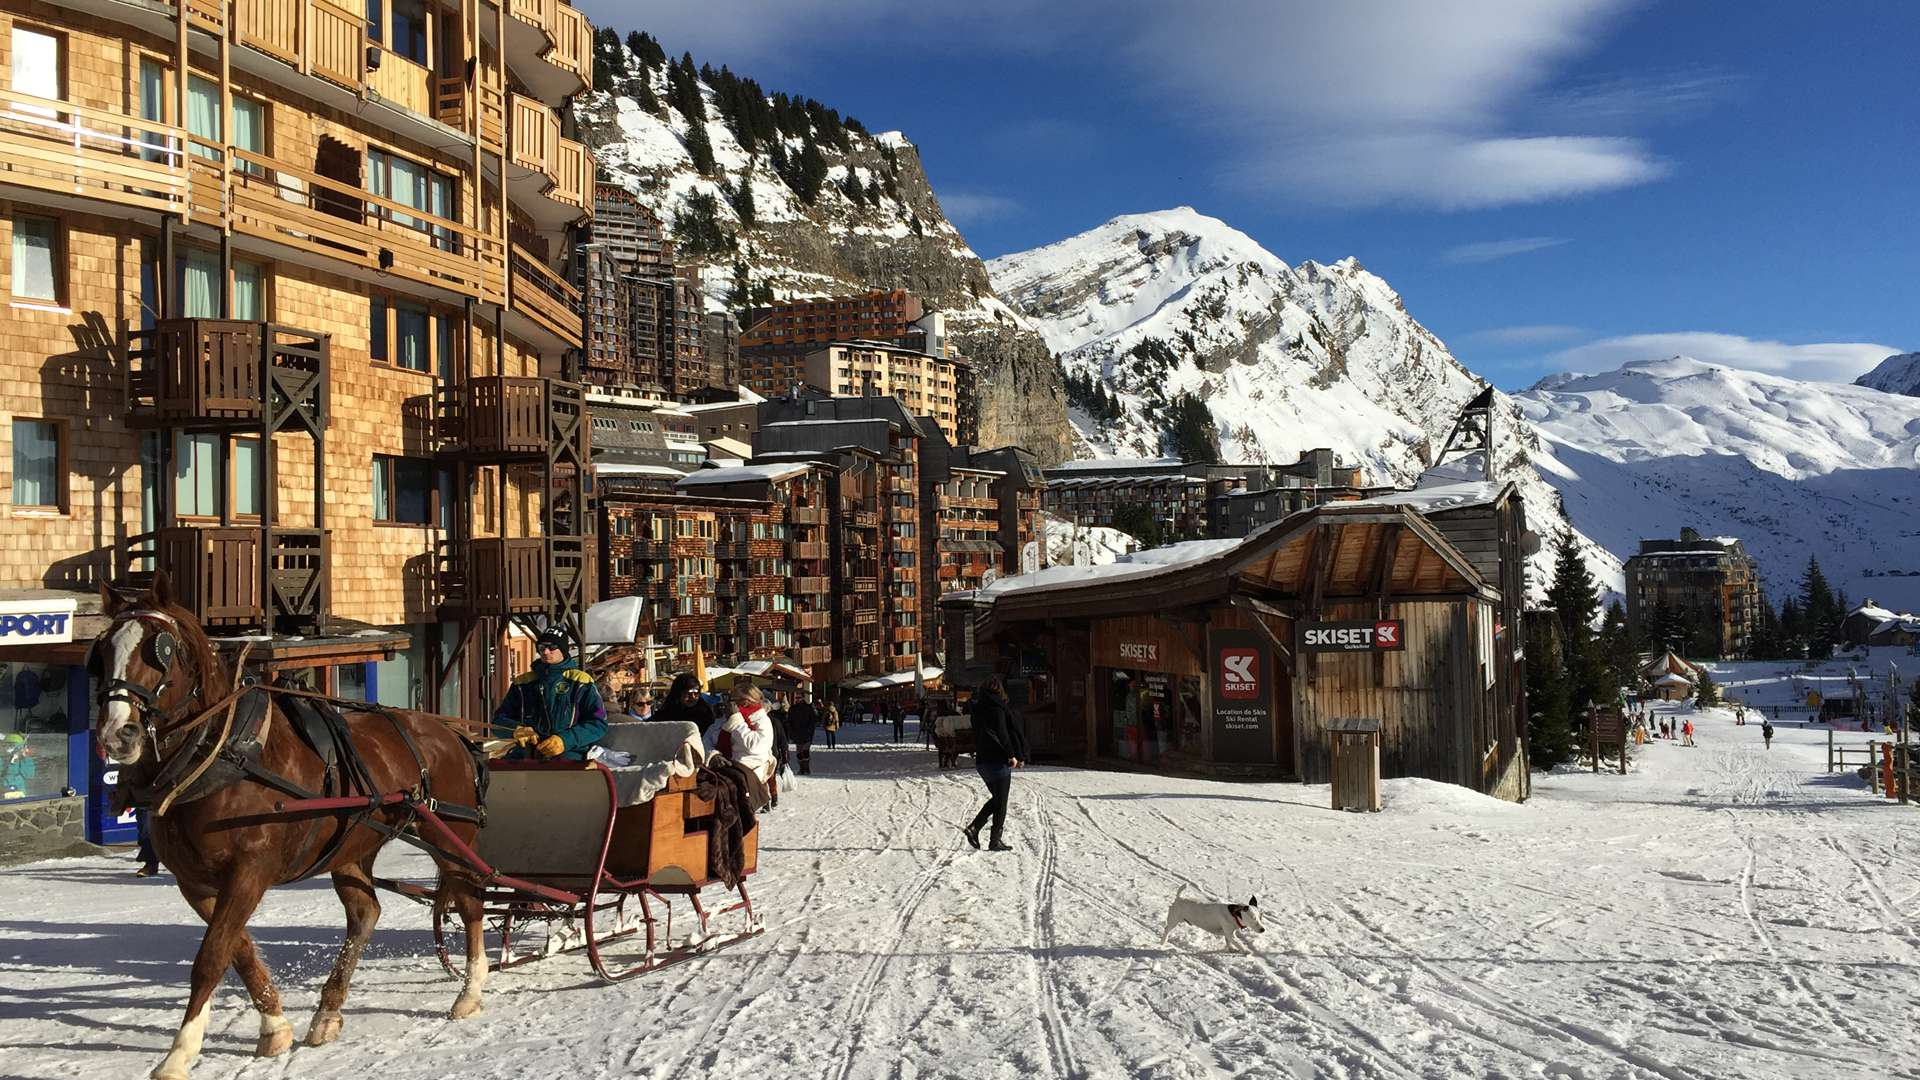 News lifts and piste for Portes du Soleil for the 2019-20 ski season. Avoriaz photo.